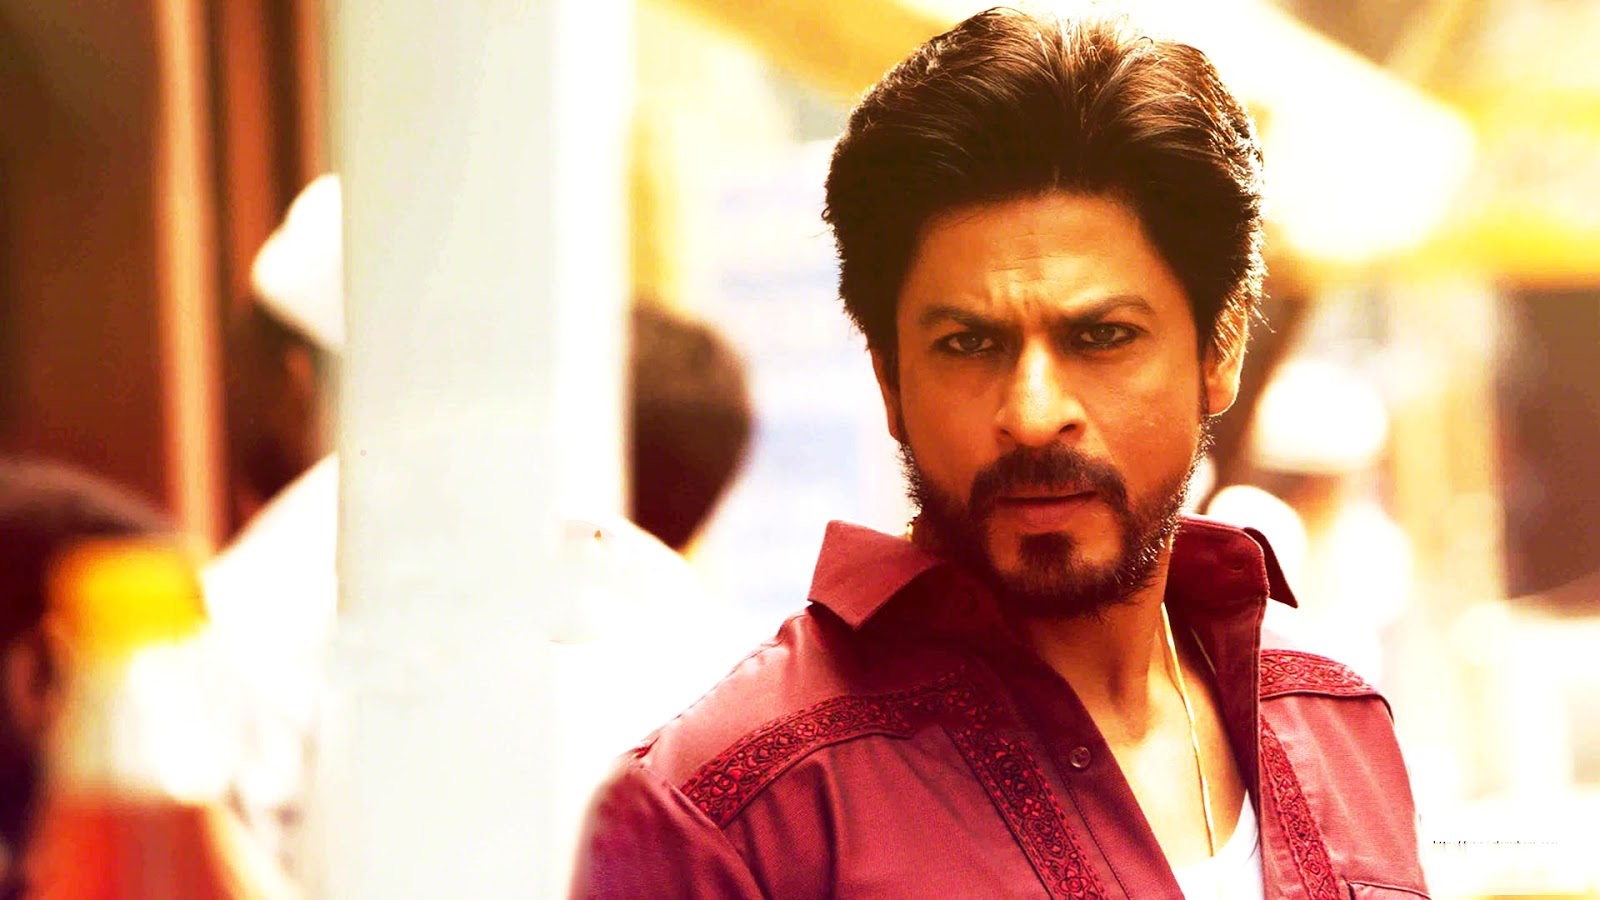 Global Pictures Gallery Shah Rukh Khan Full Hd Wallpapers: Shahrukh Khan Hd Wallpapers 1080p